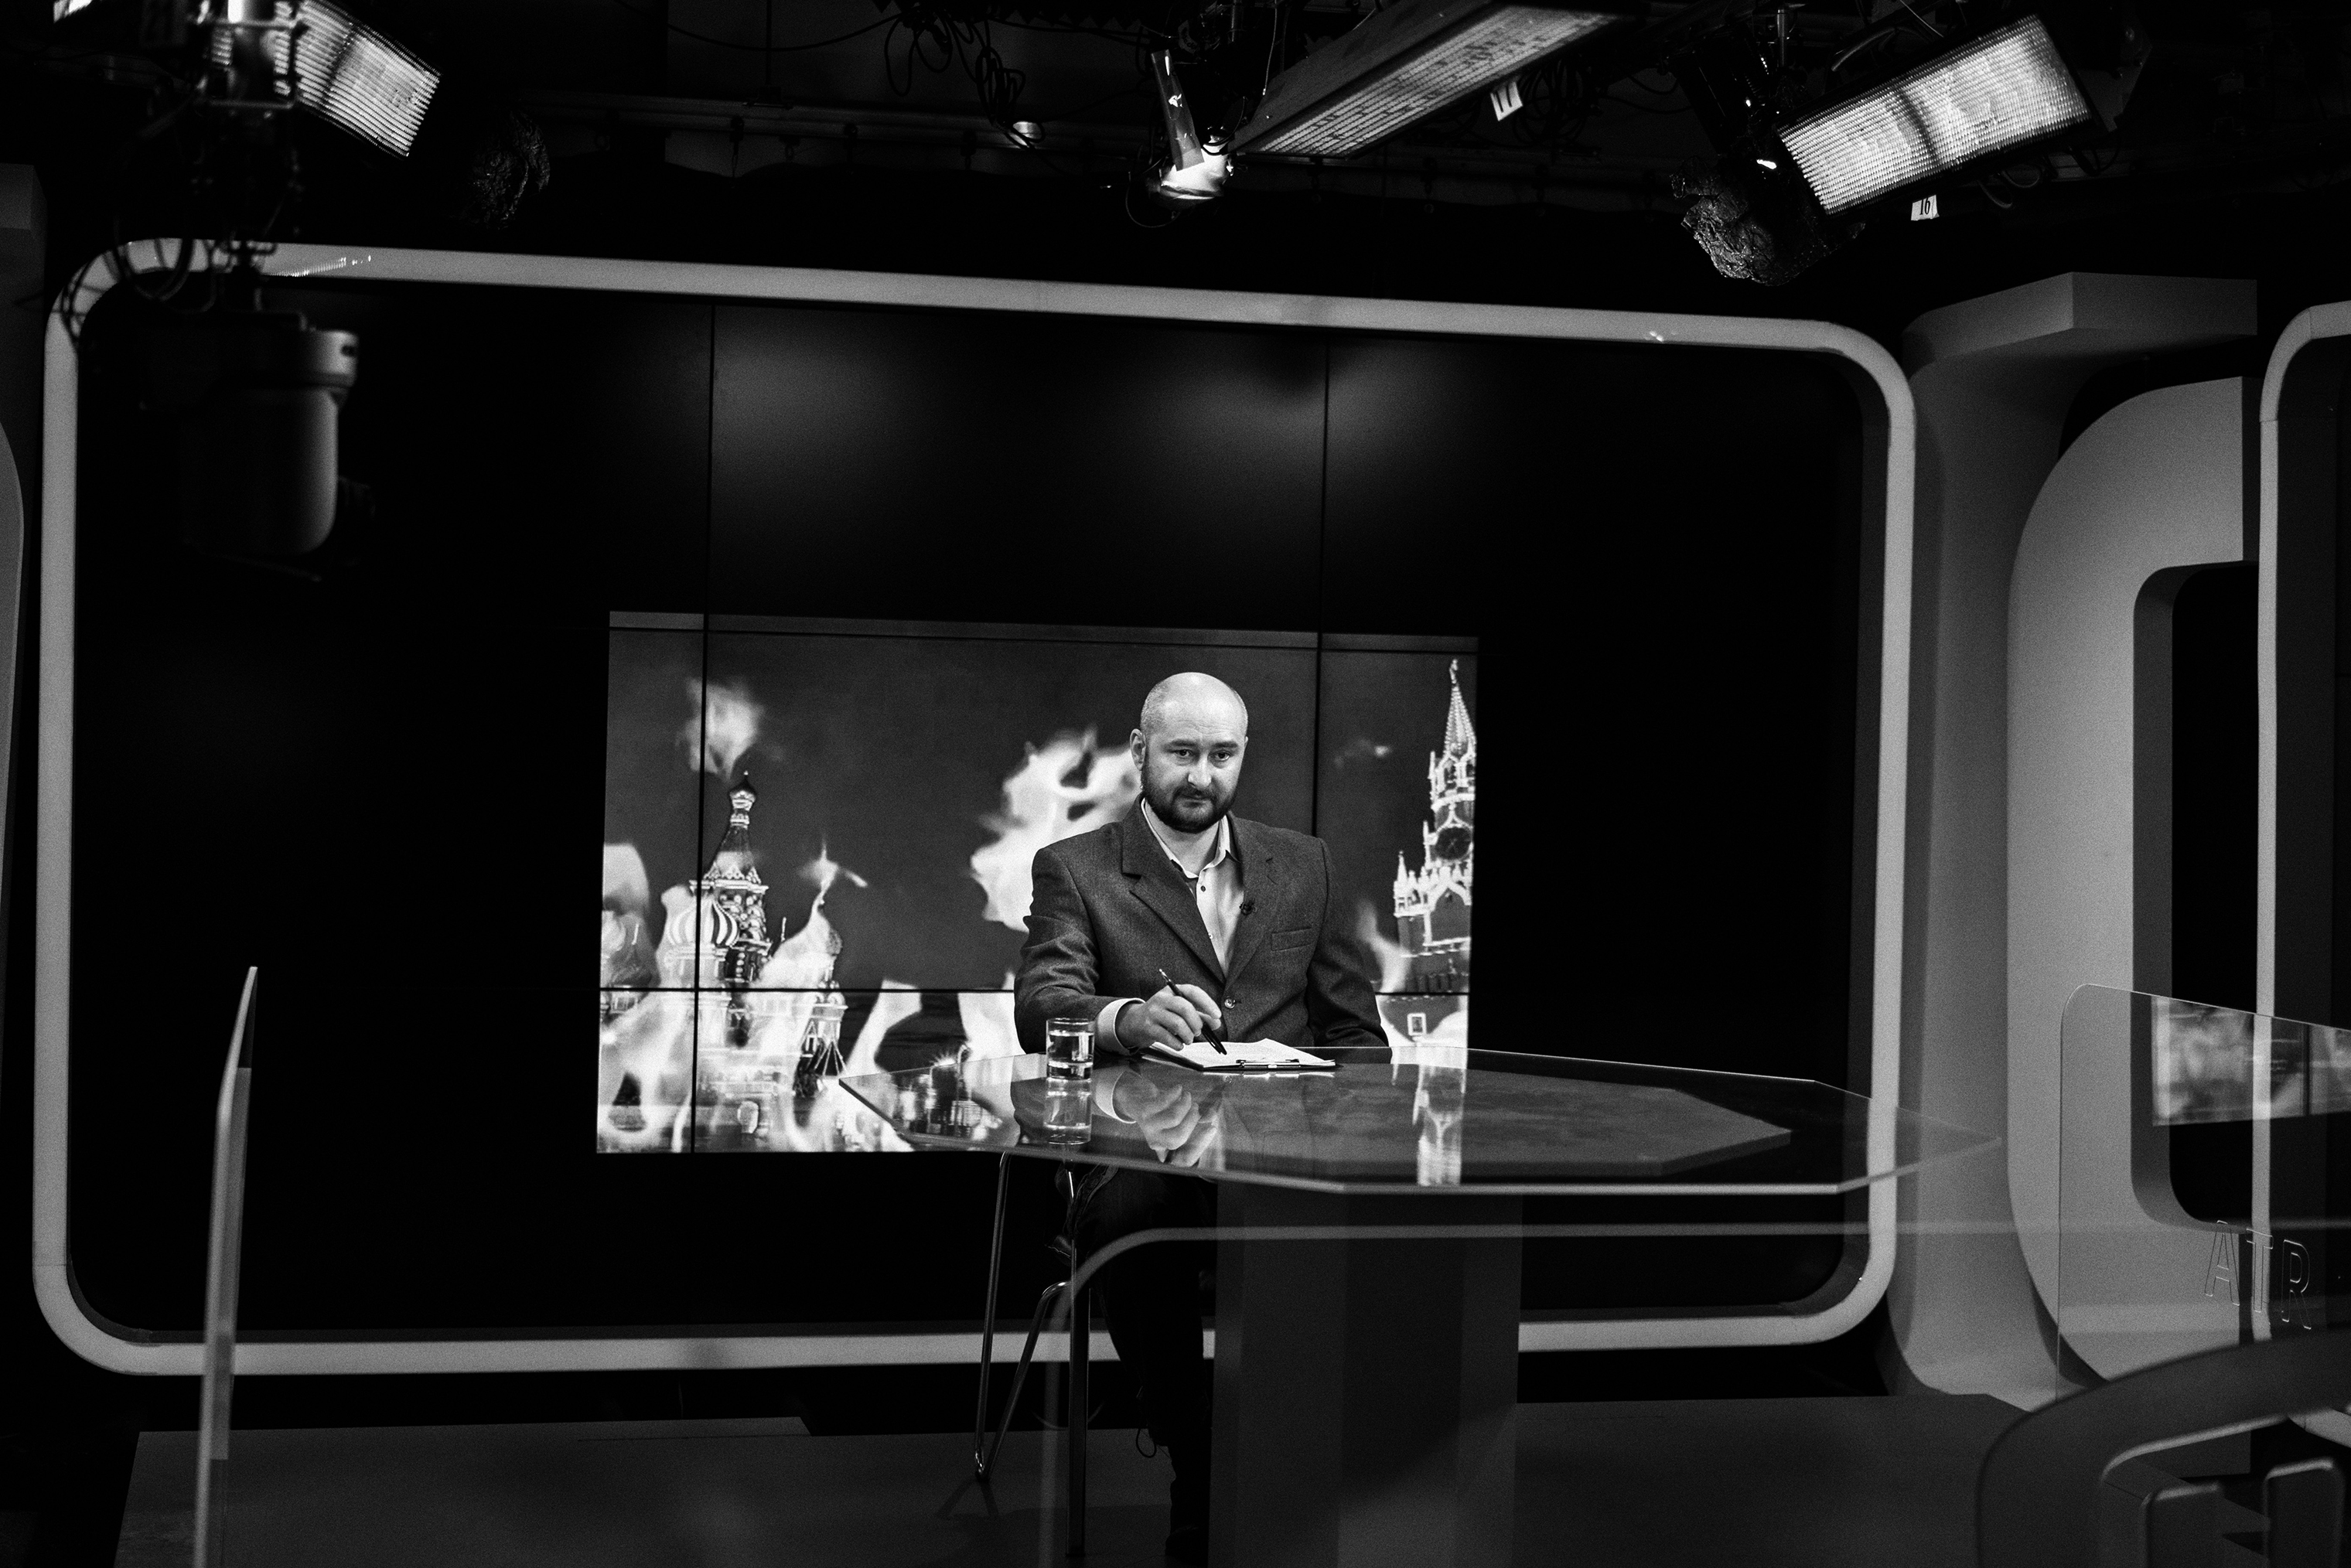 Arkady Babchenko spent years as a Russian war correspondent, leaving for Kiev in 2017 after his criticism of the Kremlin led to threats against him. Last spring, when Ukraine's intelligence agency warned of a plot to assassinate him, he faked his own death in a sting operation designed to catch the people paying for the murders—a controversial move in the journalism world.